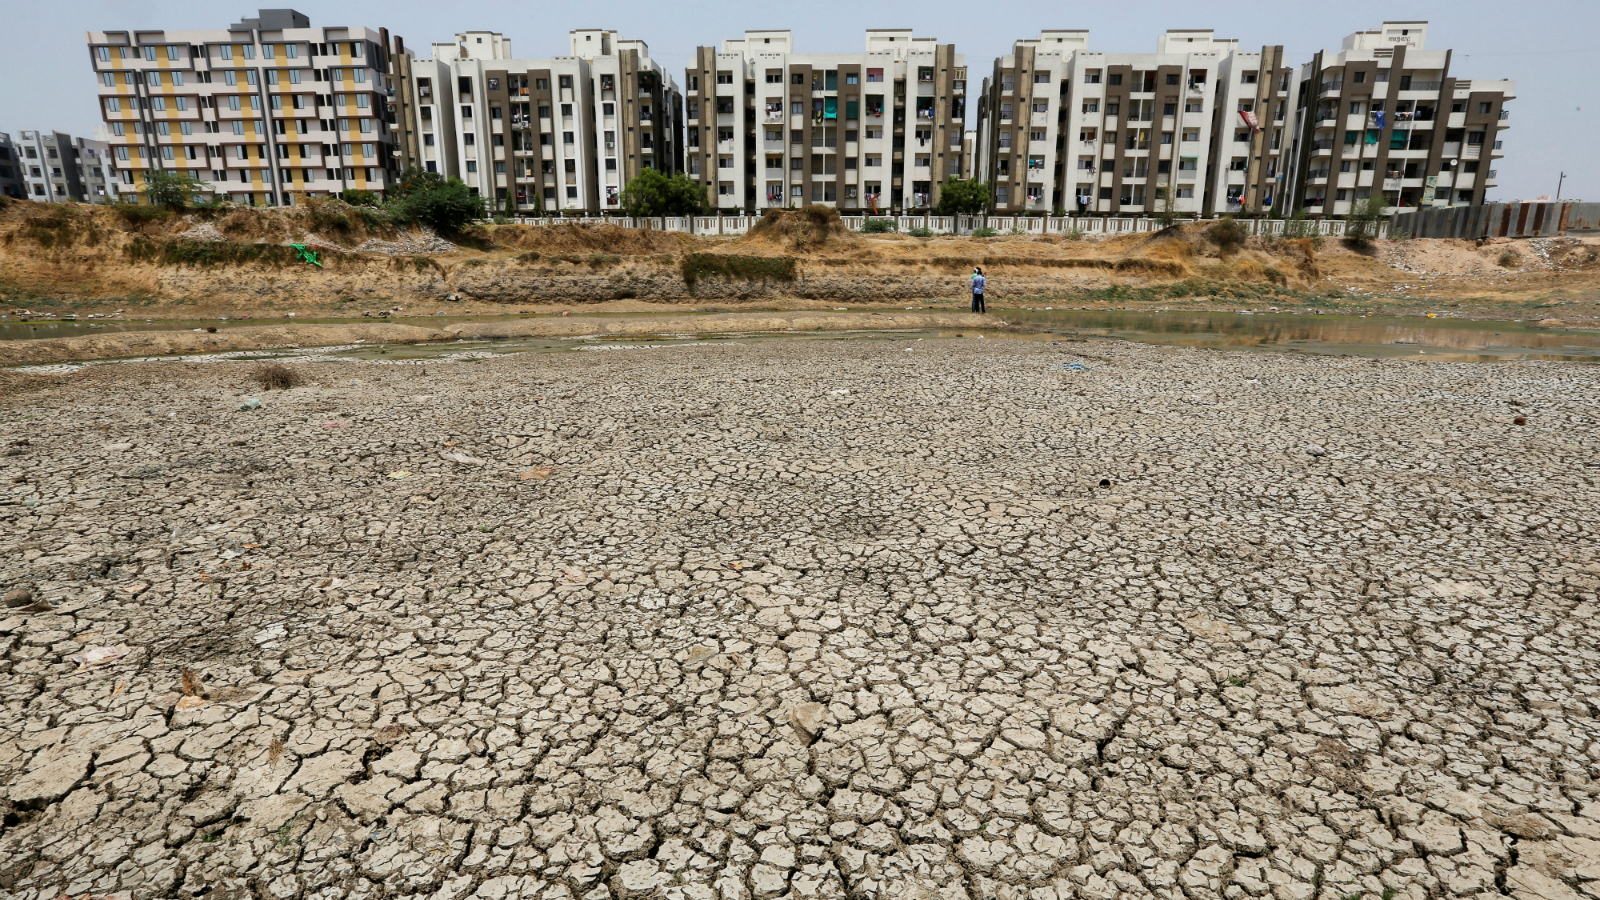 Residential apartments are seen next to the dried-up Ratanpura lake on the outskirts of Ahmedabad.